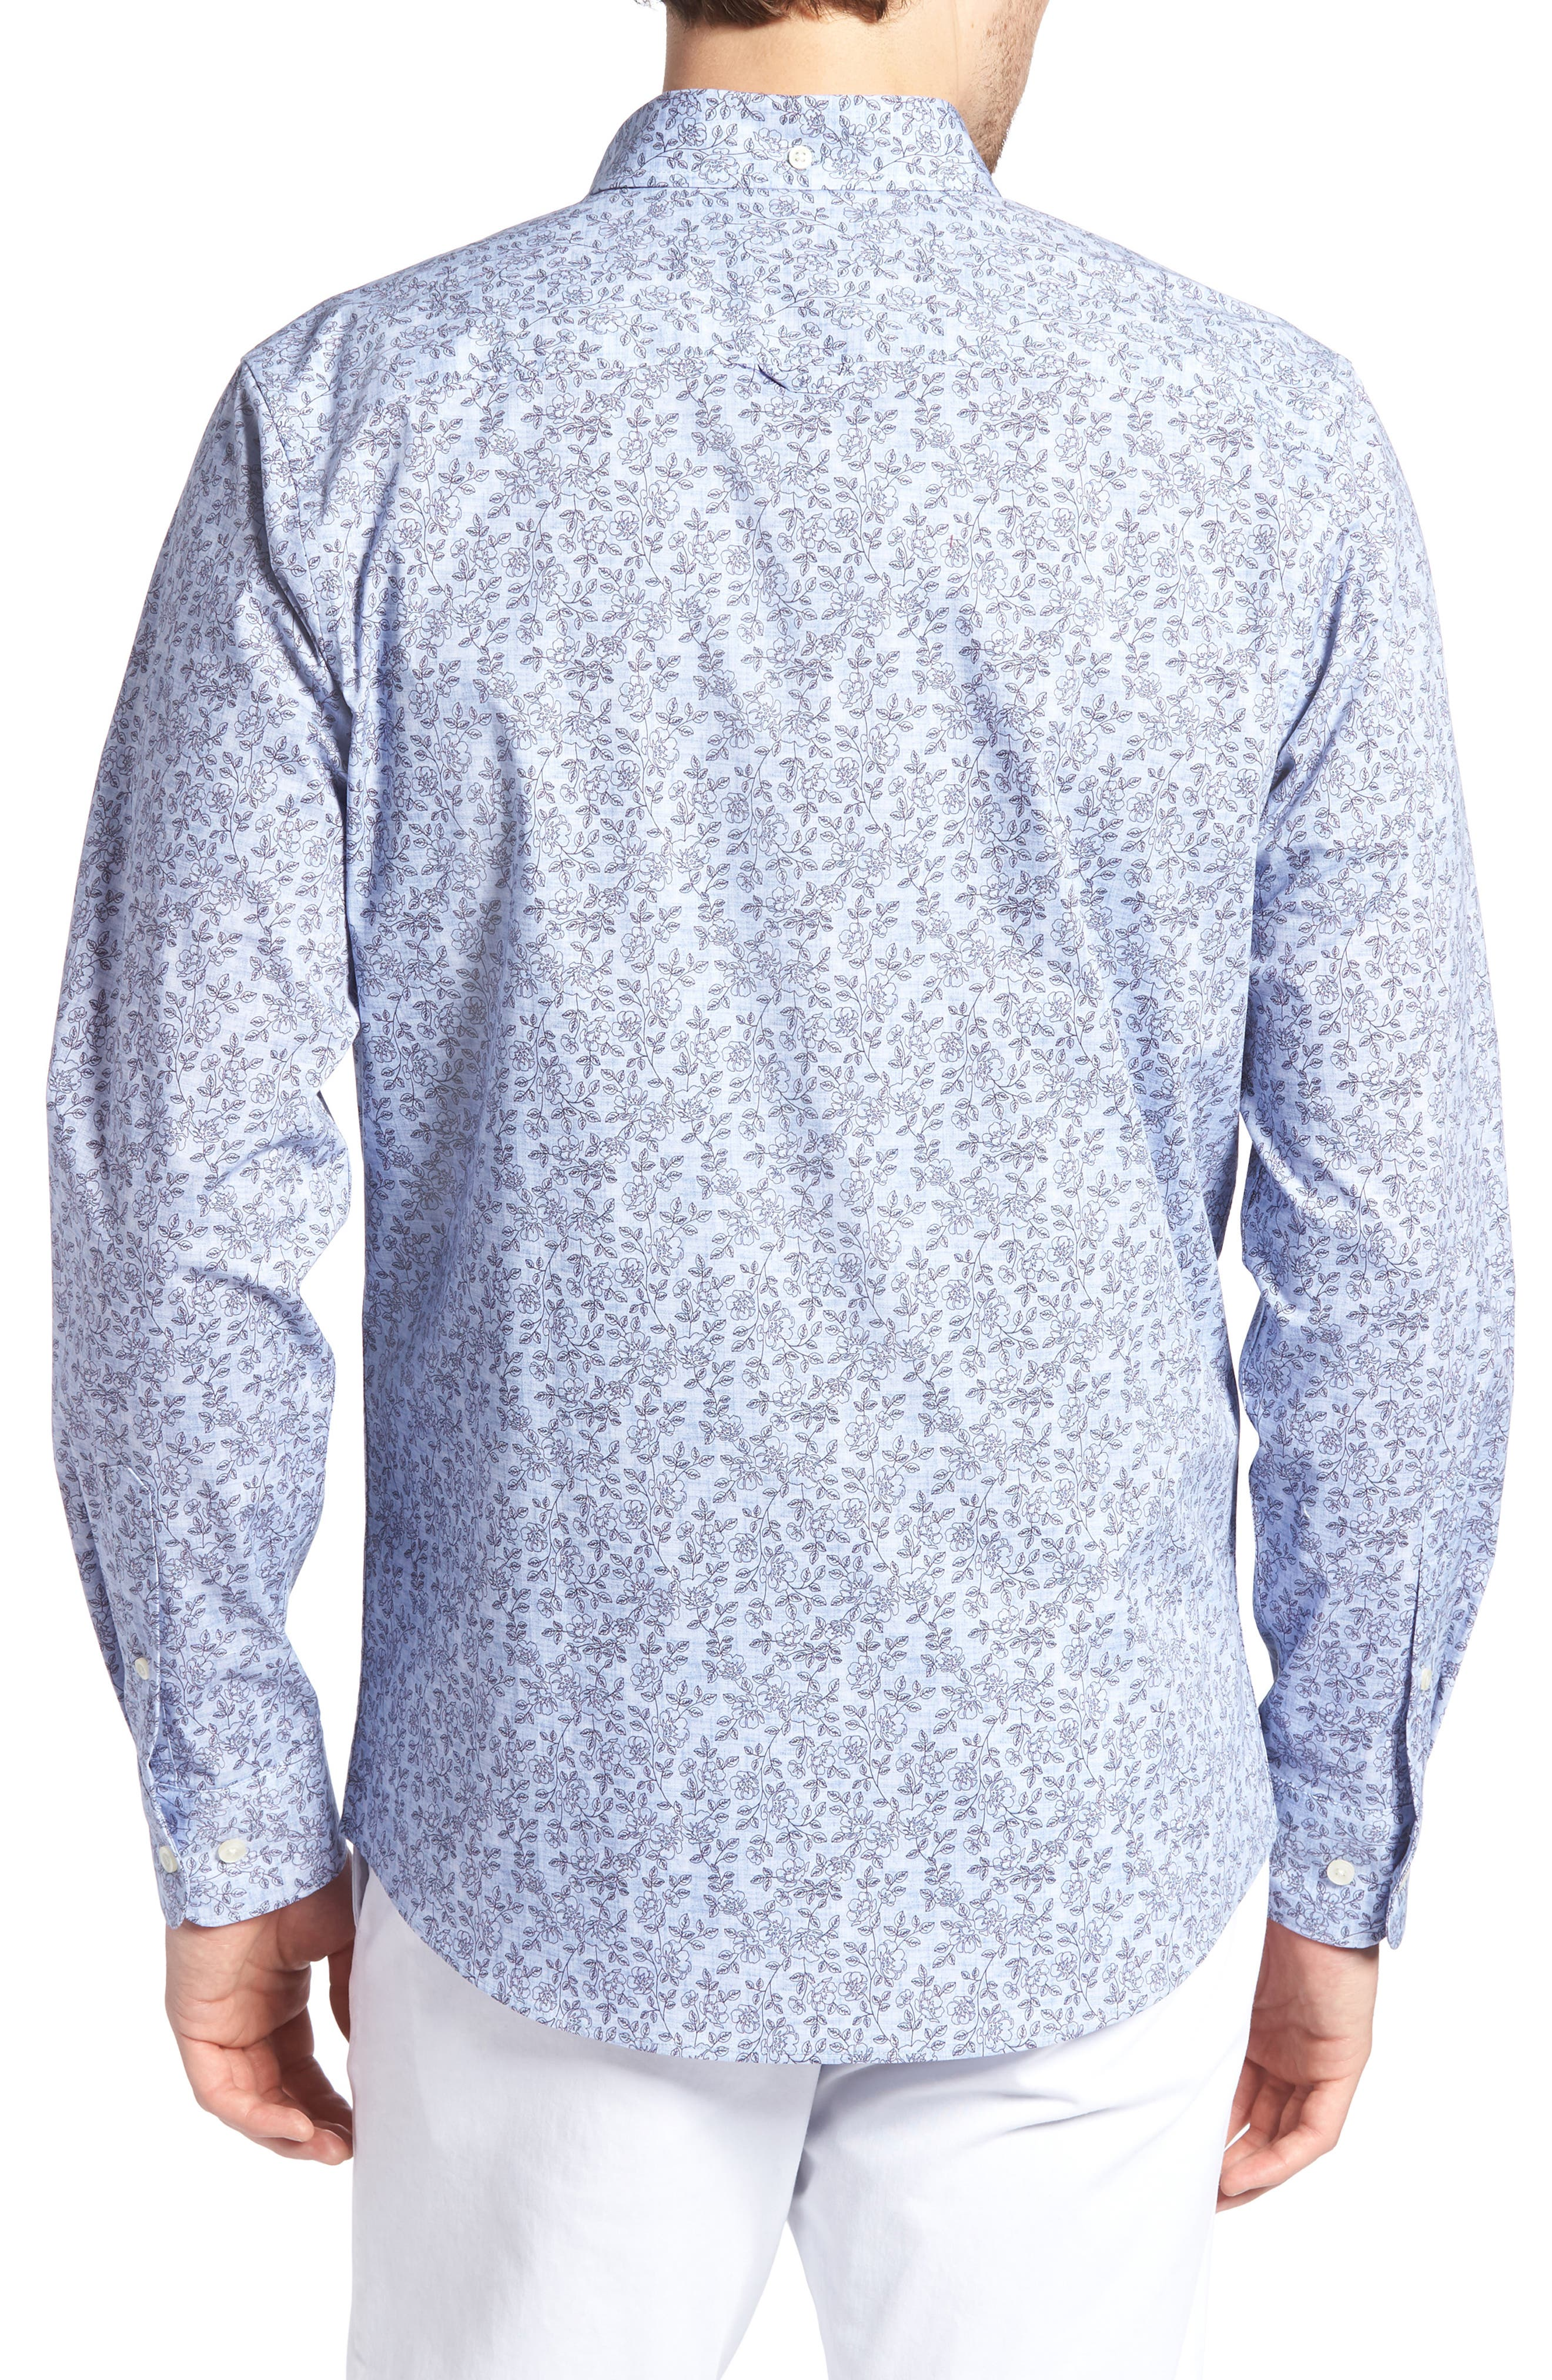 Trim Fit Chambray Floral Print Sport Shirt,                             Alternate thumbnail 3, color,                             Chambray Flower Print